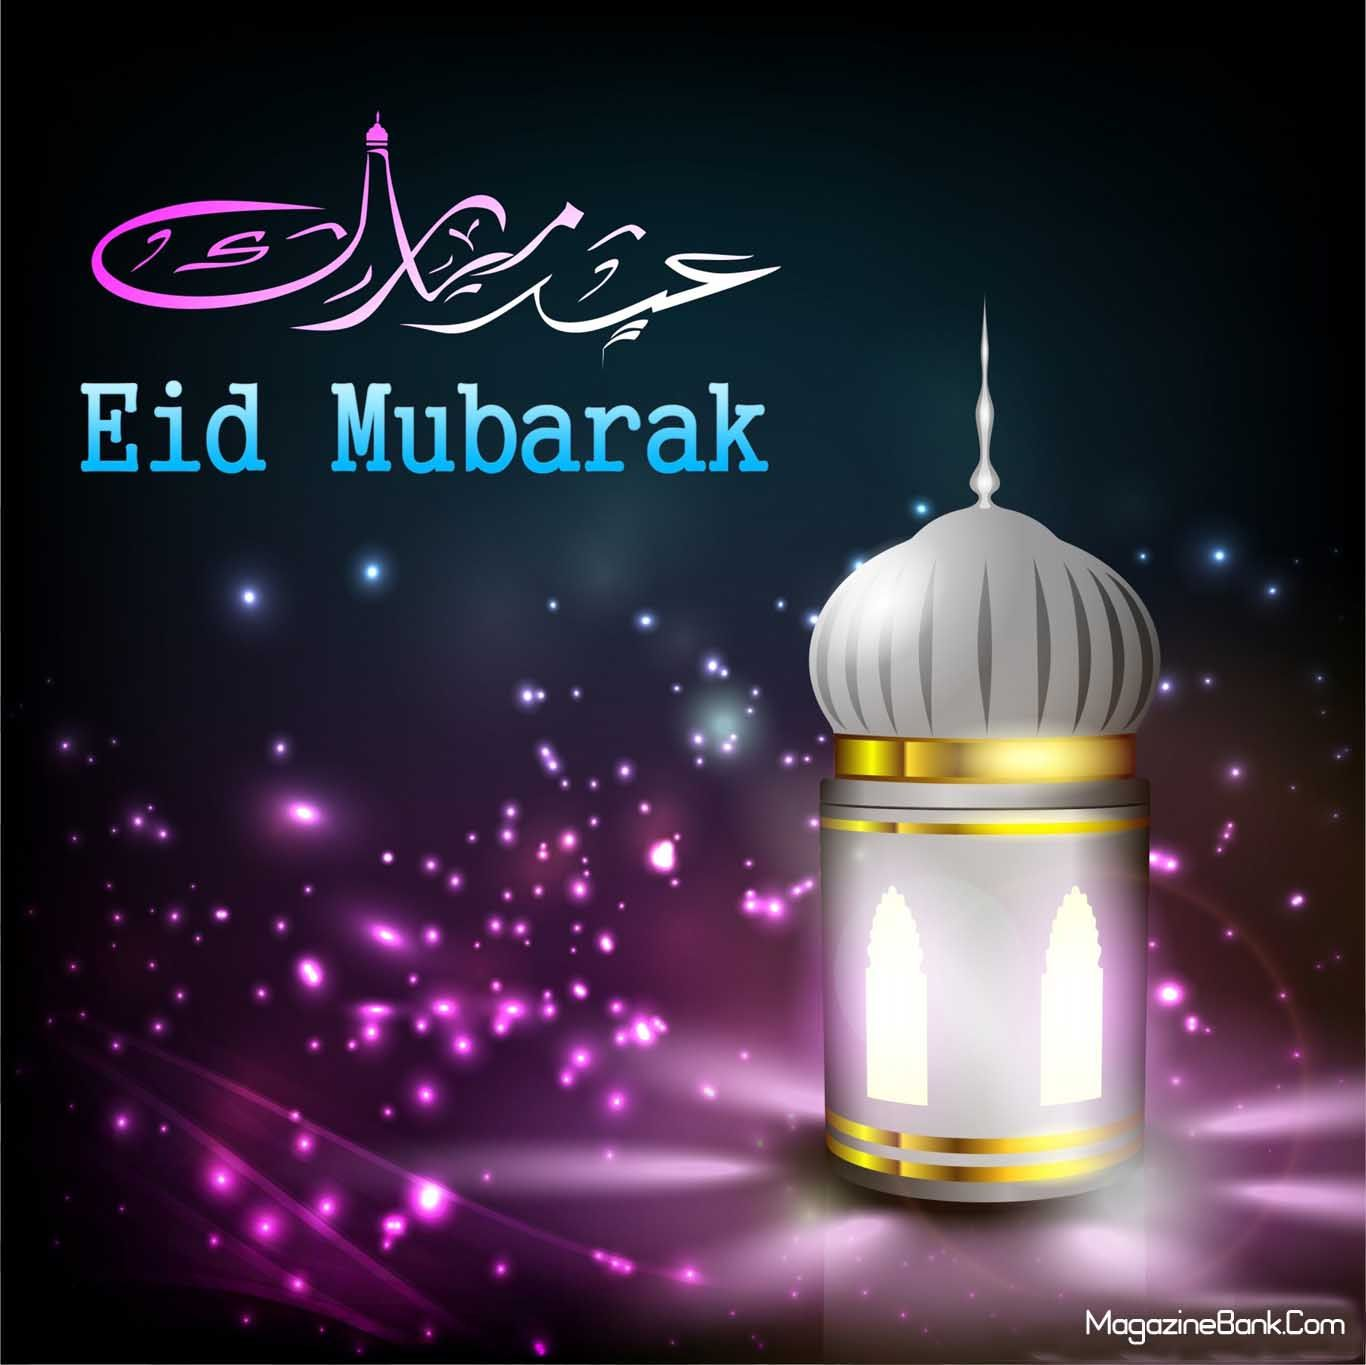 Hd wallpaper eid mubarak - Eid Mubarak 2015 Images And Hd Wallpapers Free Download Sms Wishes Poetry